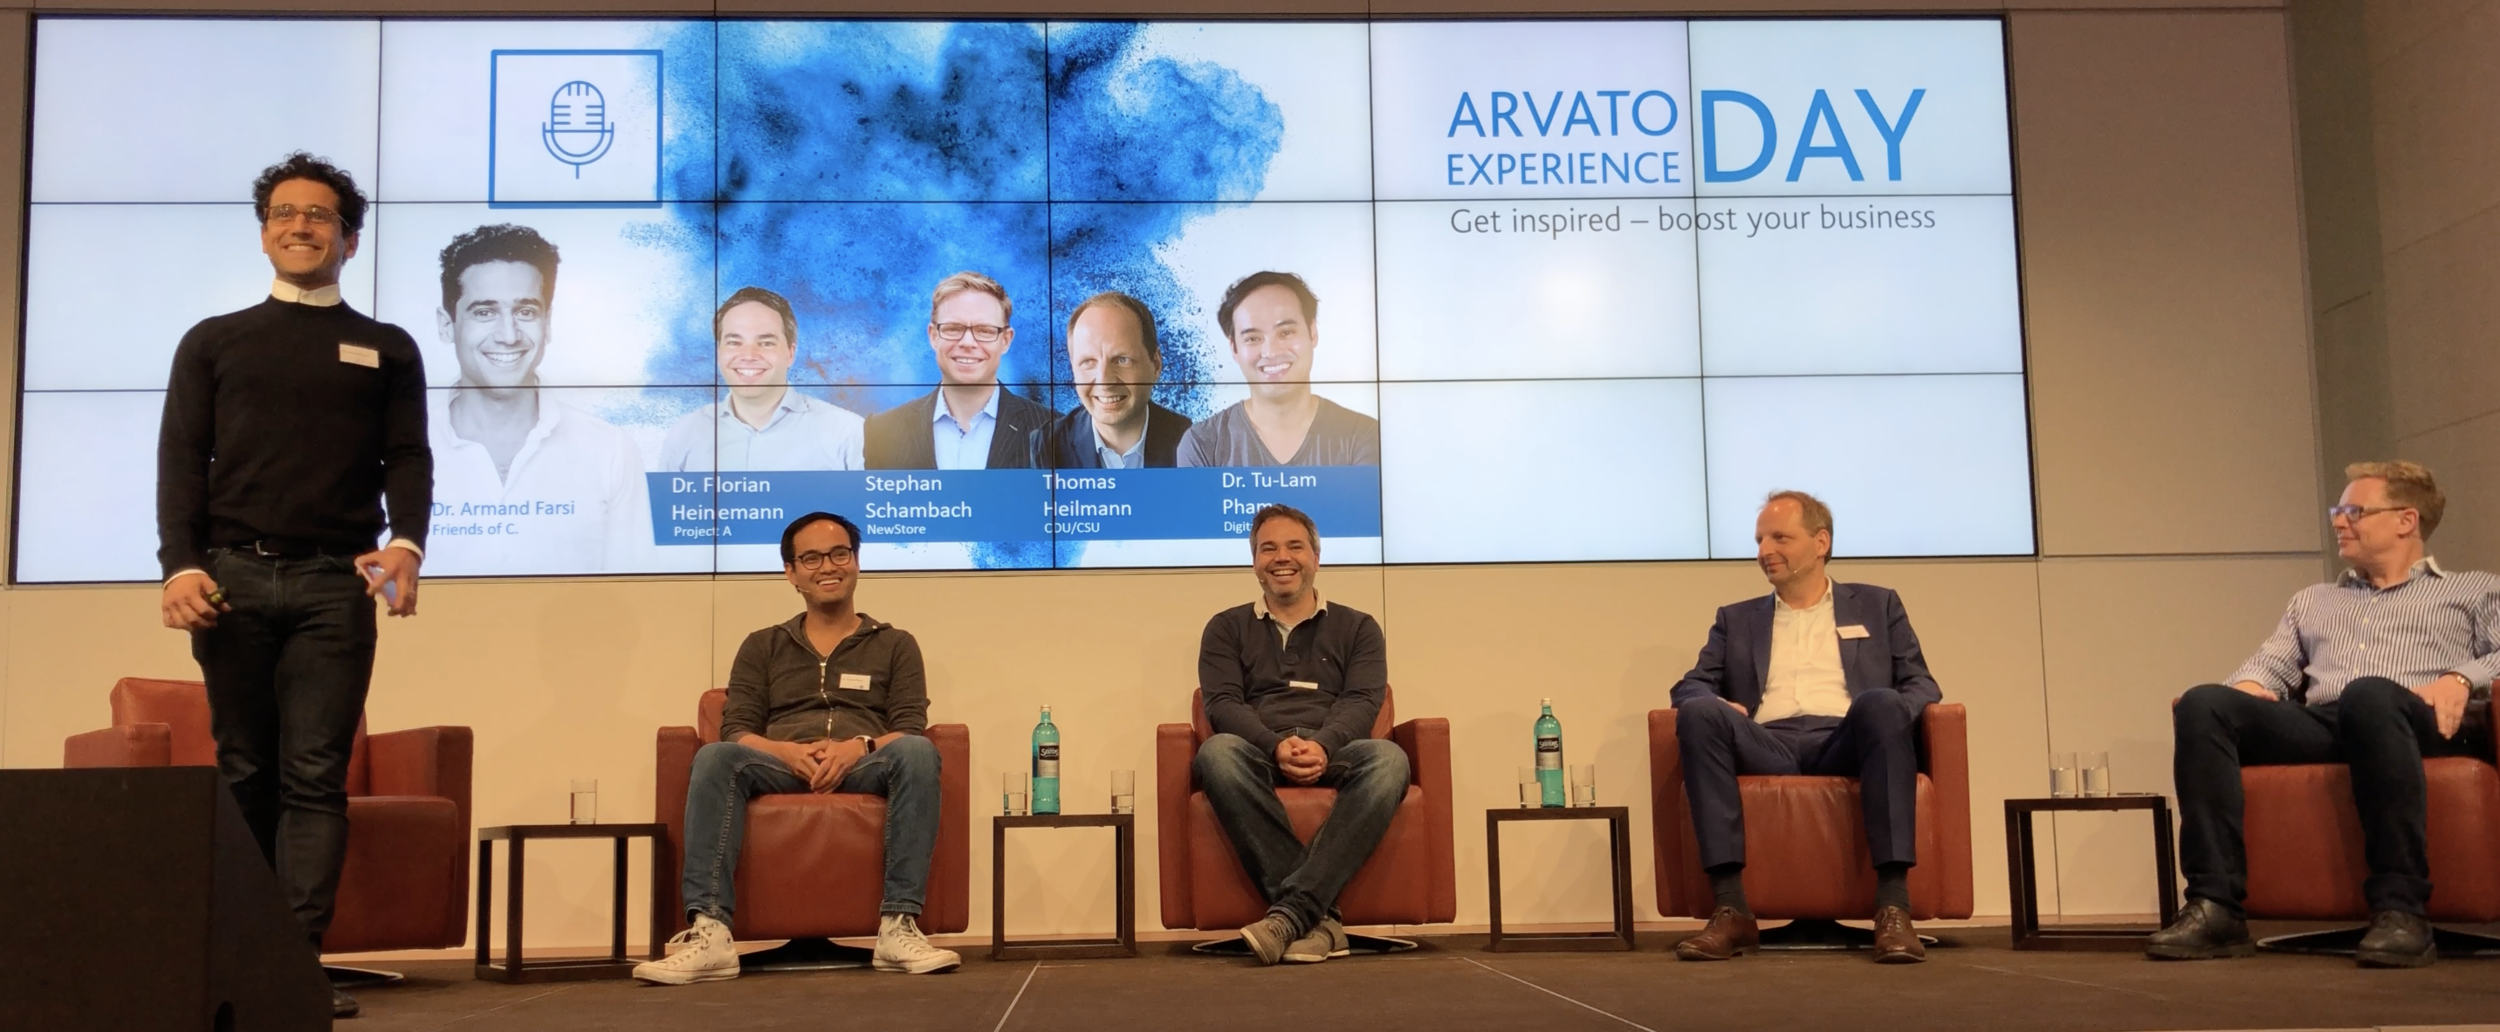 Arvato_Podiumsdiskussion.png